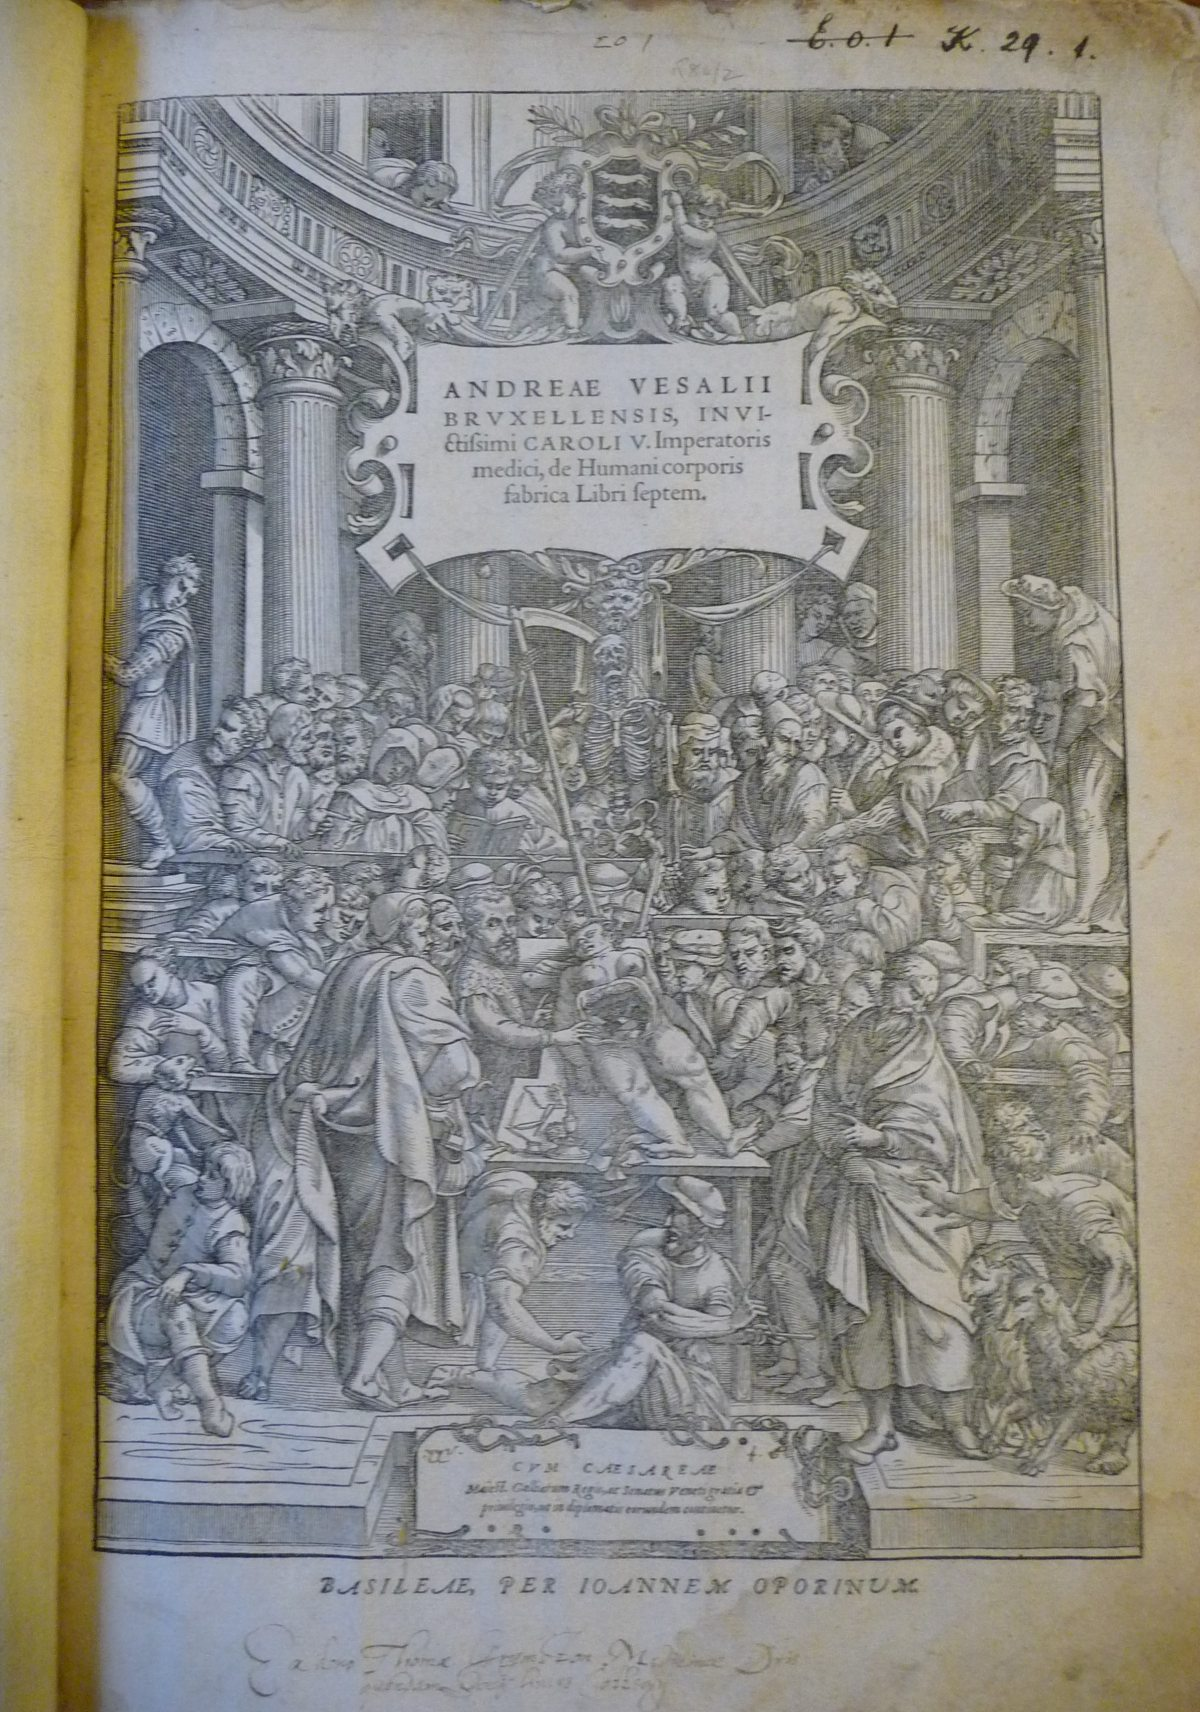 Title page from 'De humani corporis fabrica' (The fabric of the human body) by Andreas Vesalius.